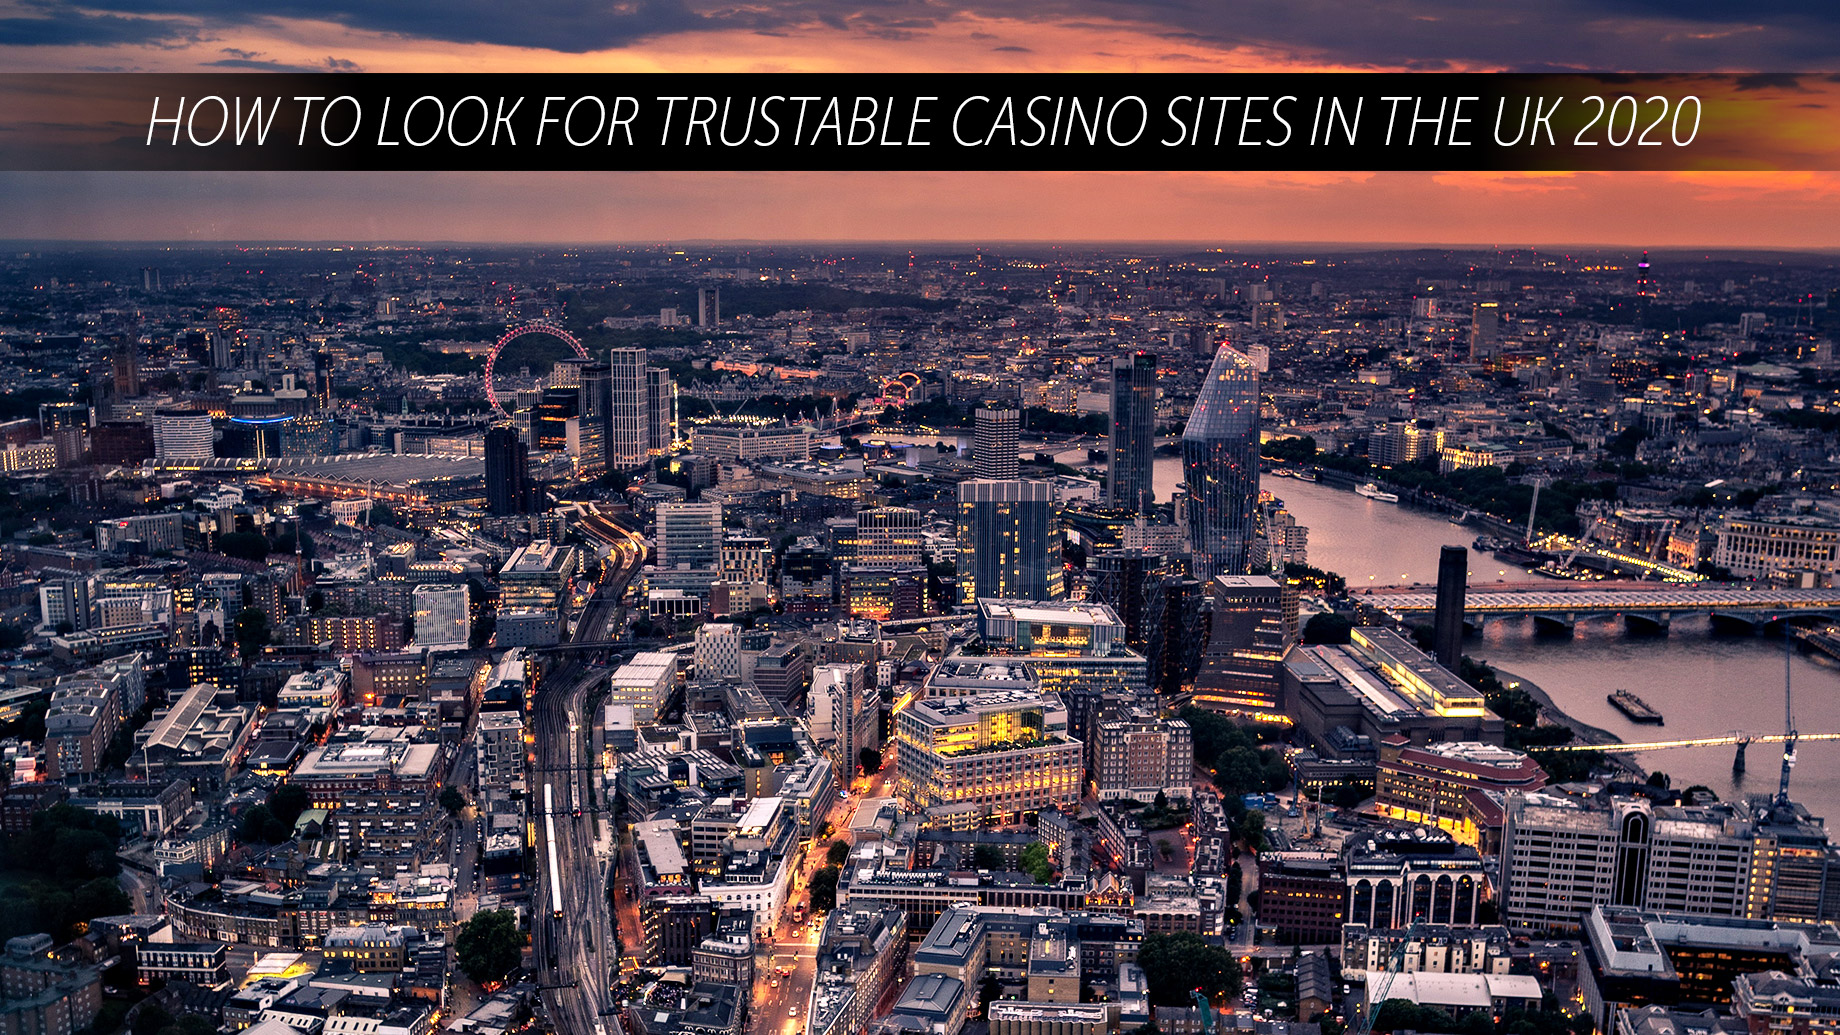 How To Look For Trustable Casino Sites In The UK 2020